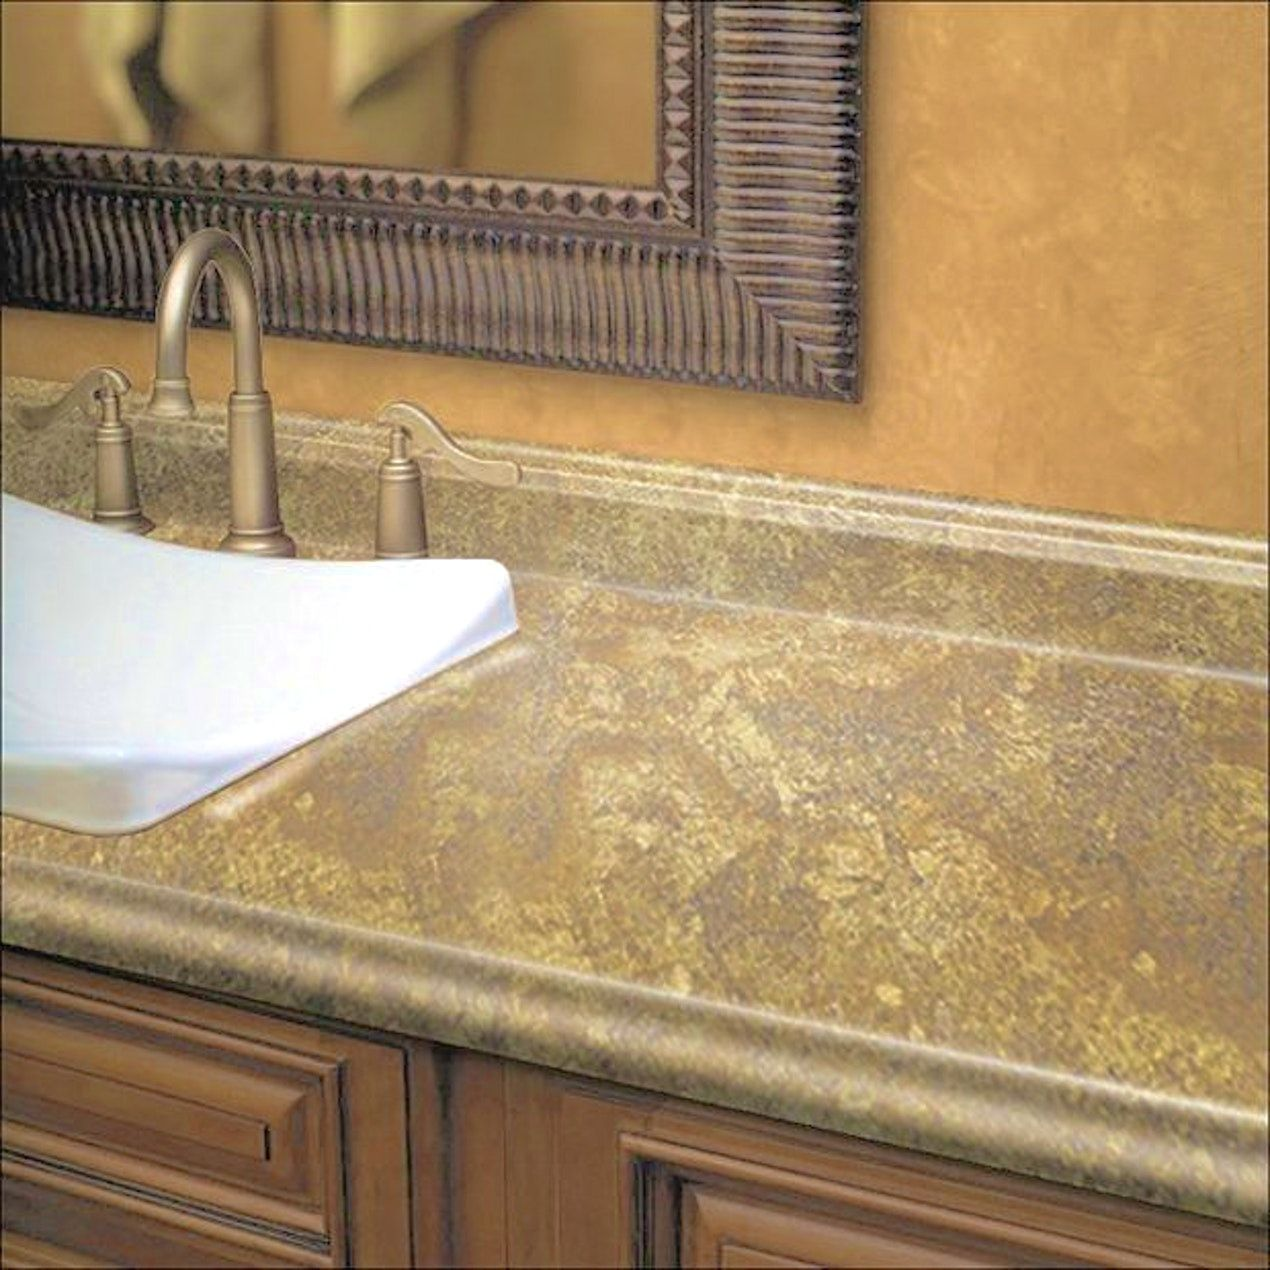 with brazilian home cabinet img lowes cheap depot full for sealer quartz flooring green too luxury slabs custom also worktops black price size near tile atlanta pictures marble prefabricated of selections omaha in kitchen countertops me colors counter granite countertop prices oven